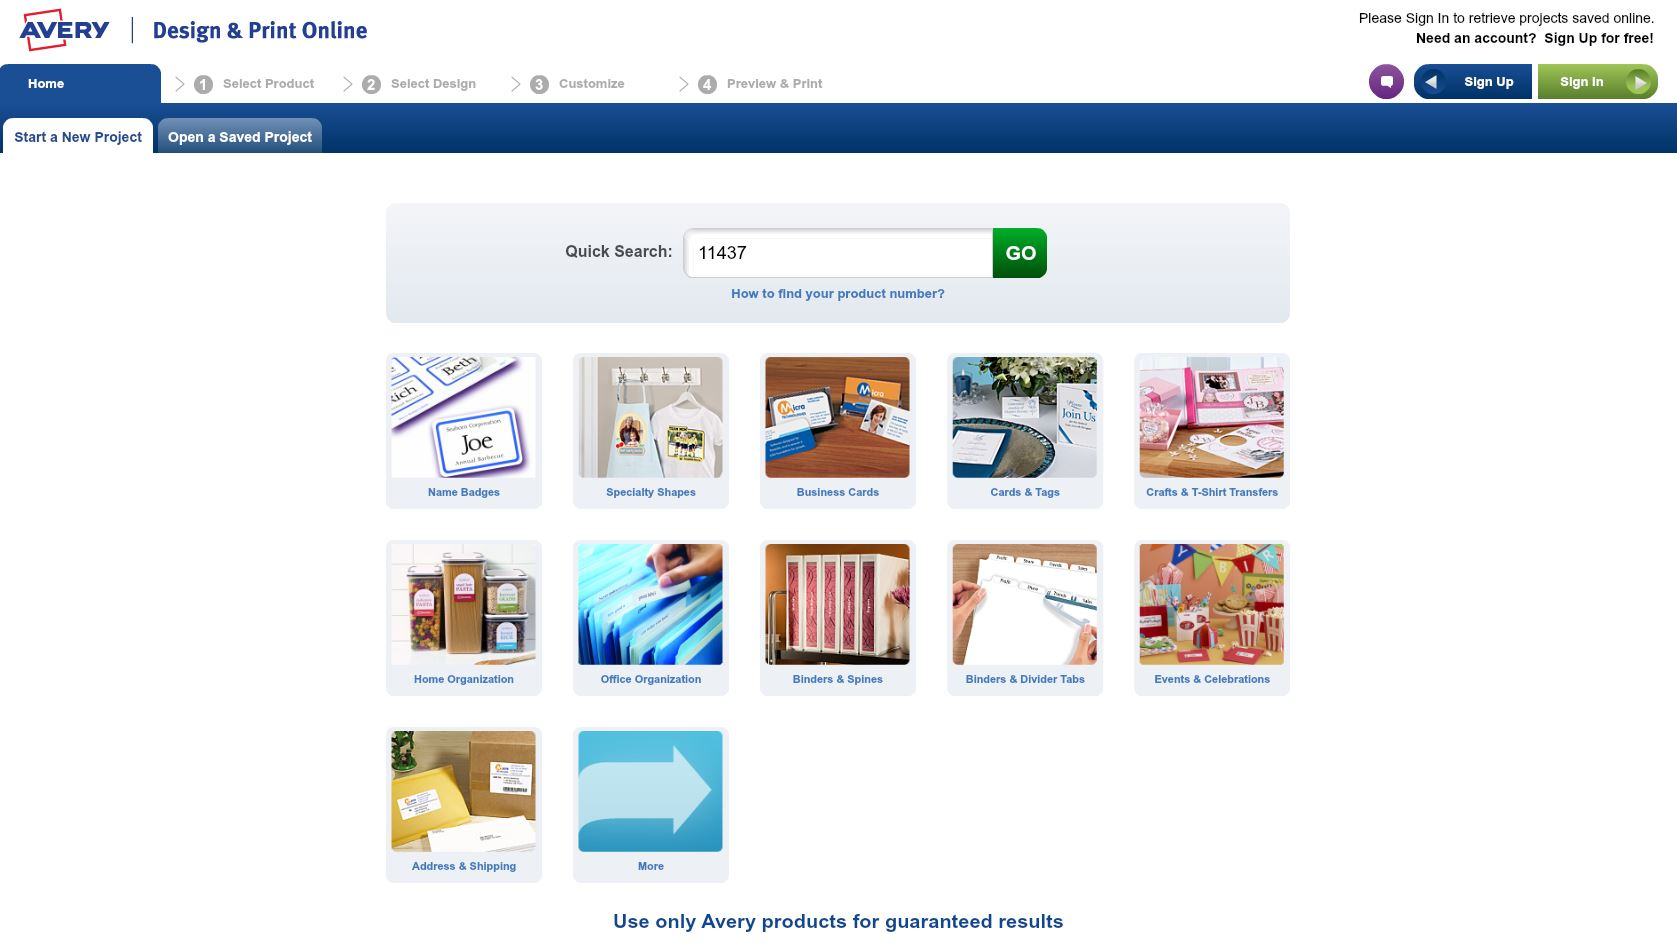 Avery Design & Print Online Easy apply indexmaker